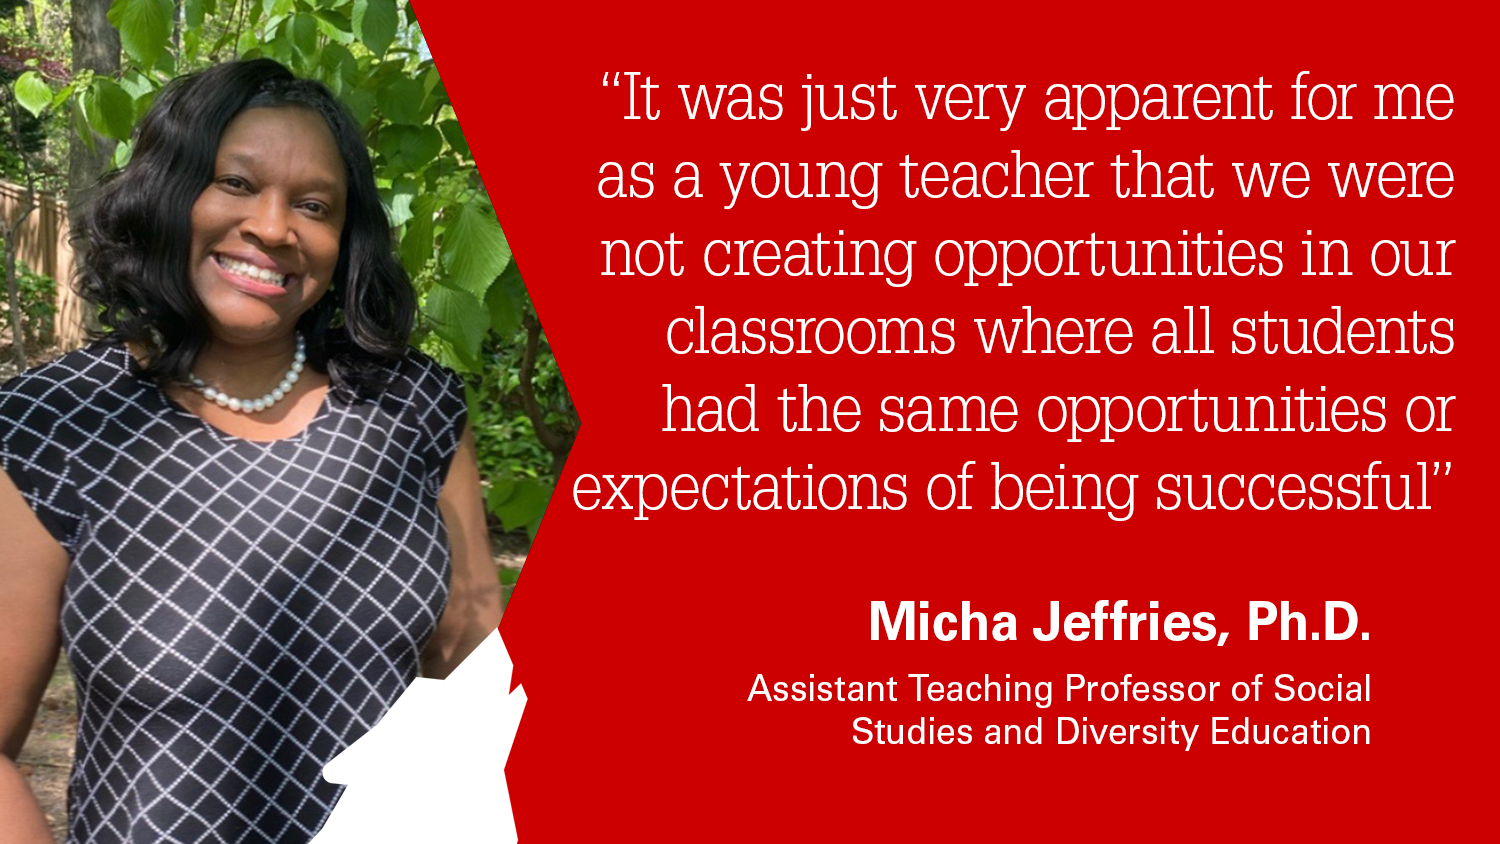 NC State College of Education Assistant Teaching Professor Micha Jeffries, Ph.D.